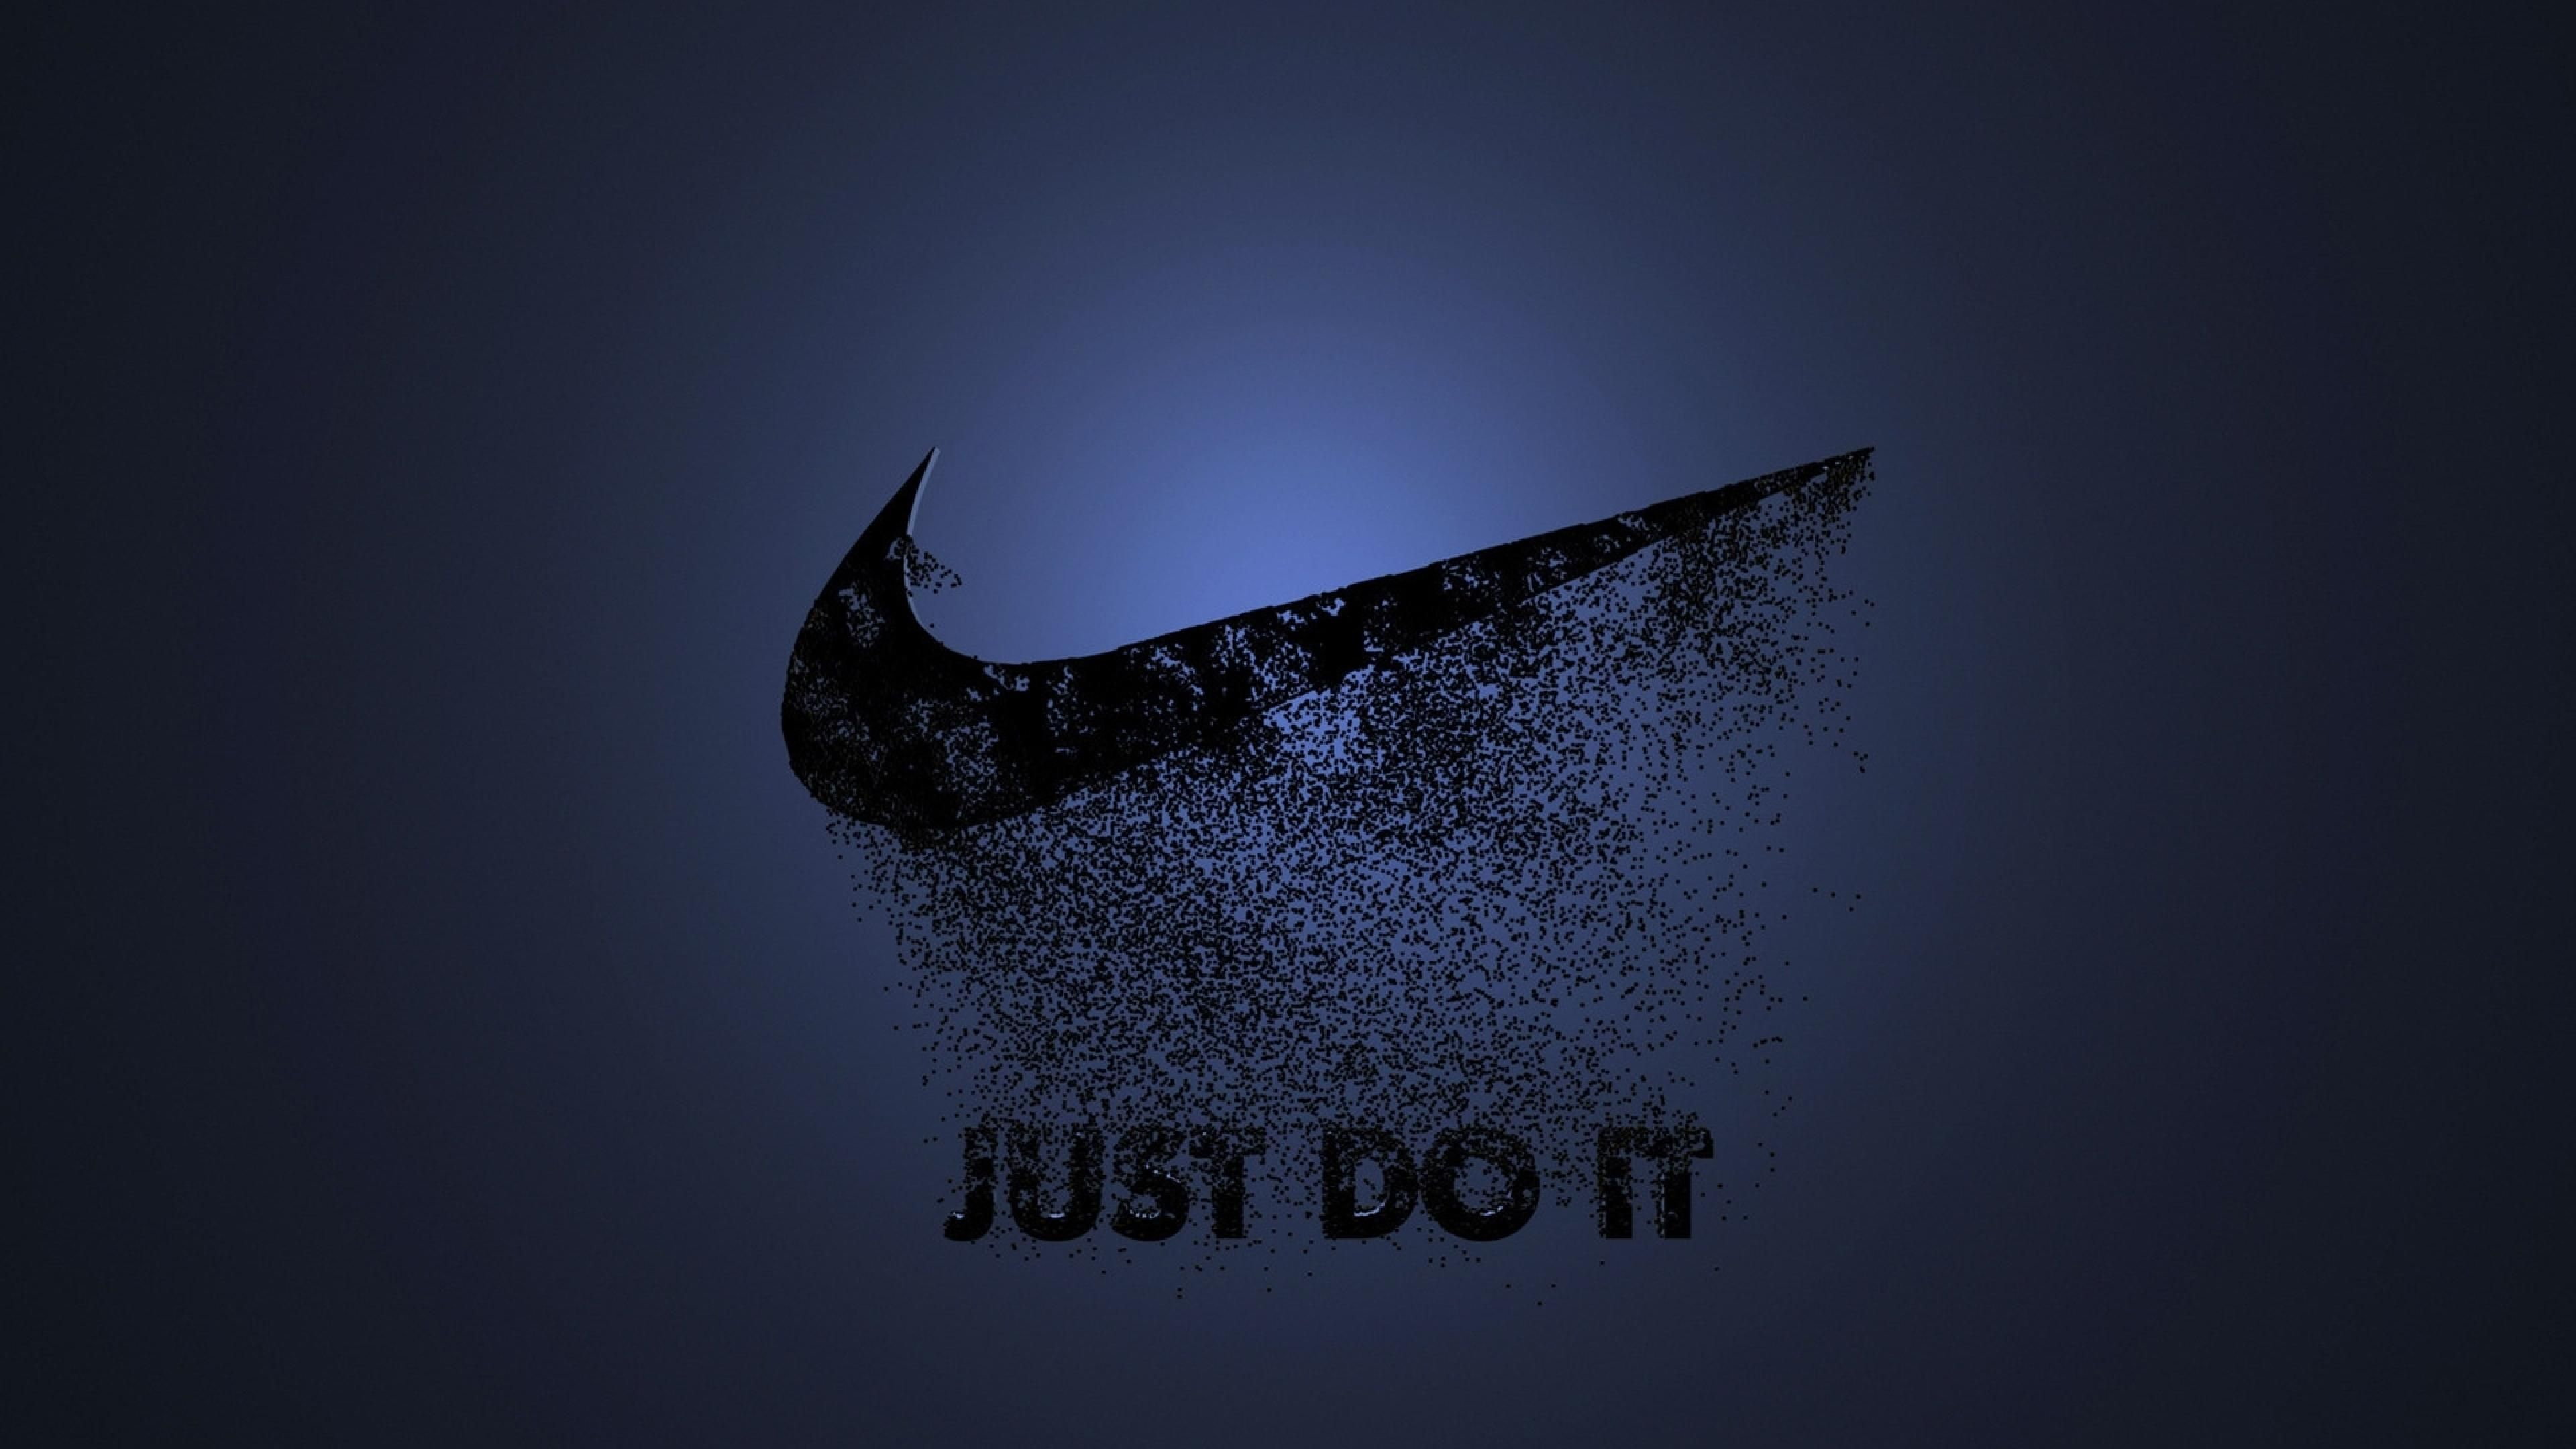 Nike Just Do It Wallpaper High Quality Resolution 38k Nike Wallpaper Nike Logo Wallpapers Logo Wallpaper Hd